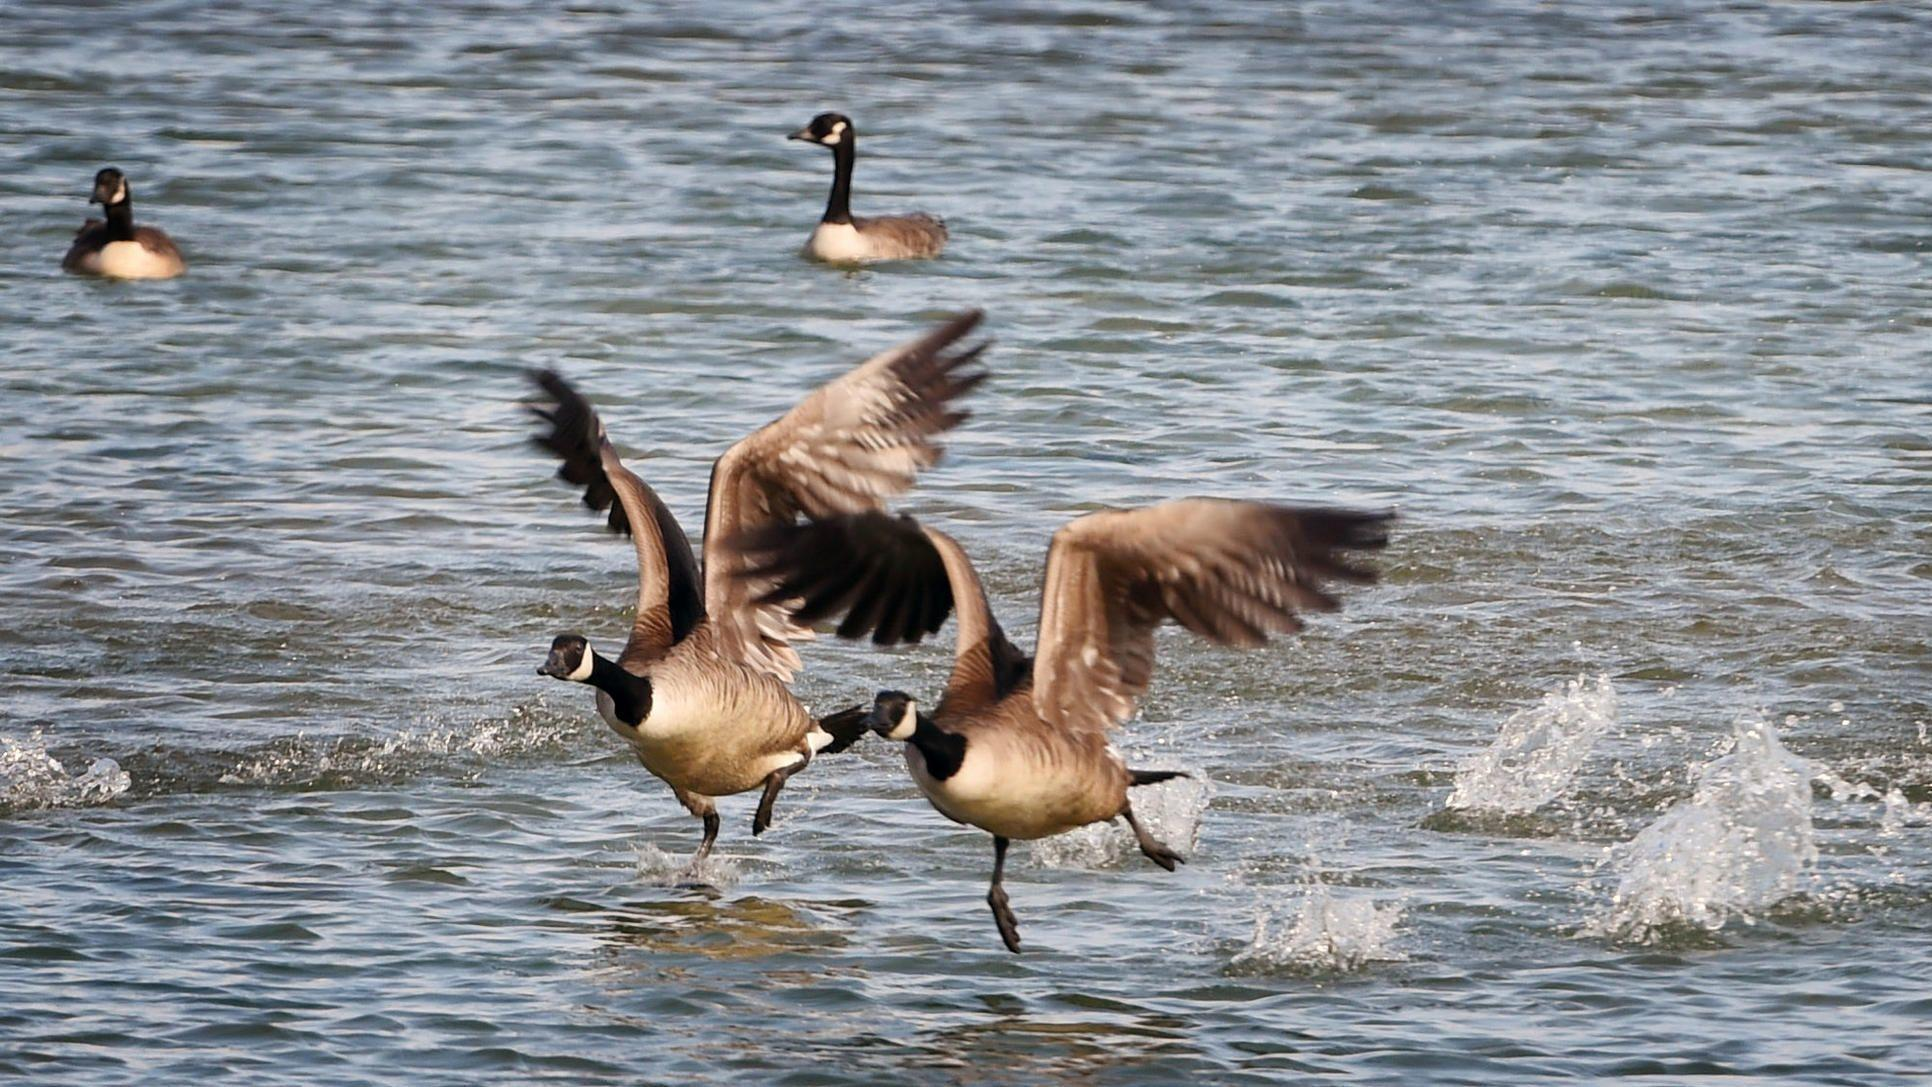 Maryland officials kill almost 400 geese as population booms